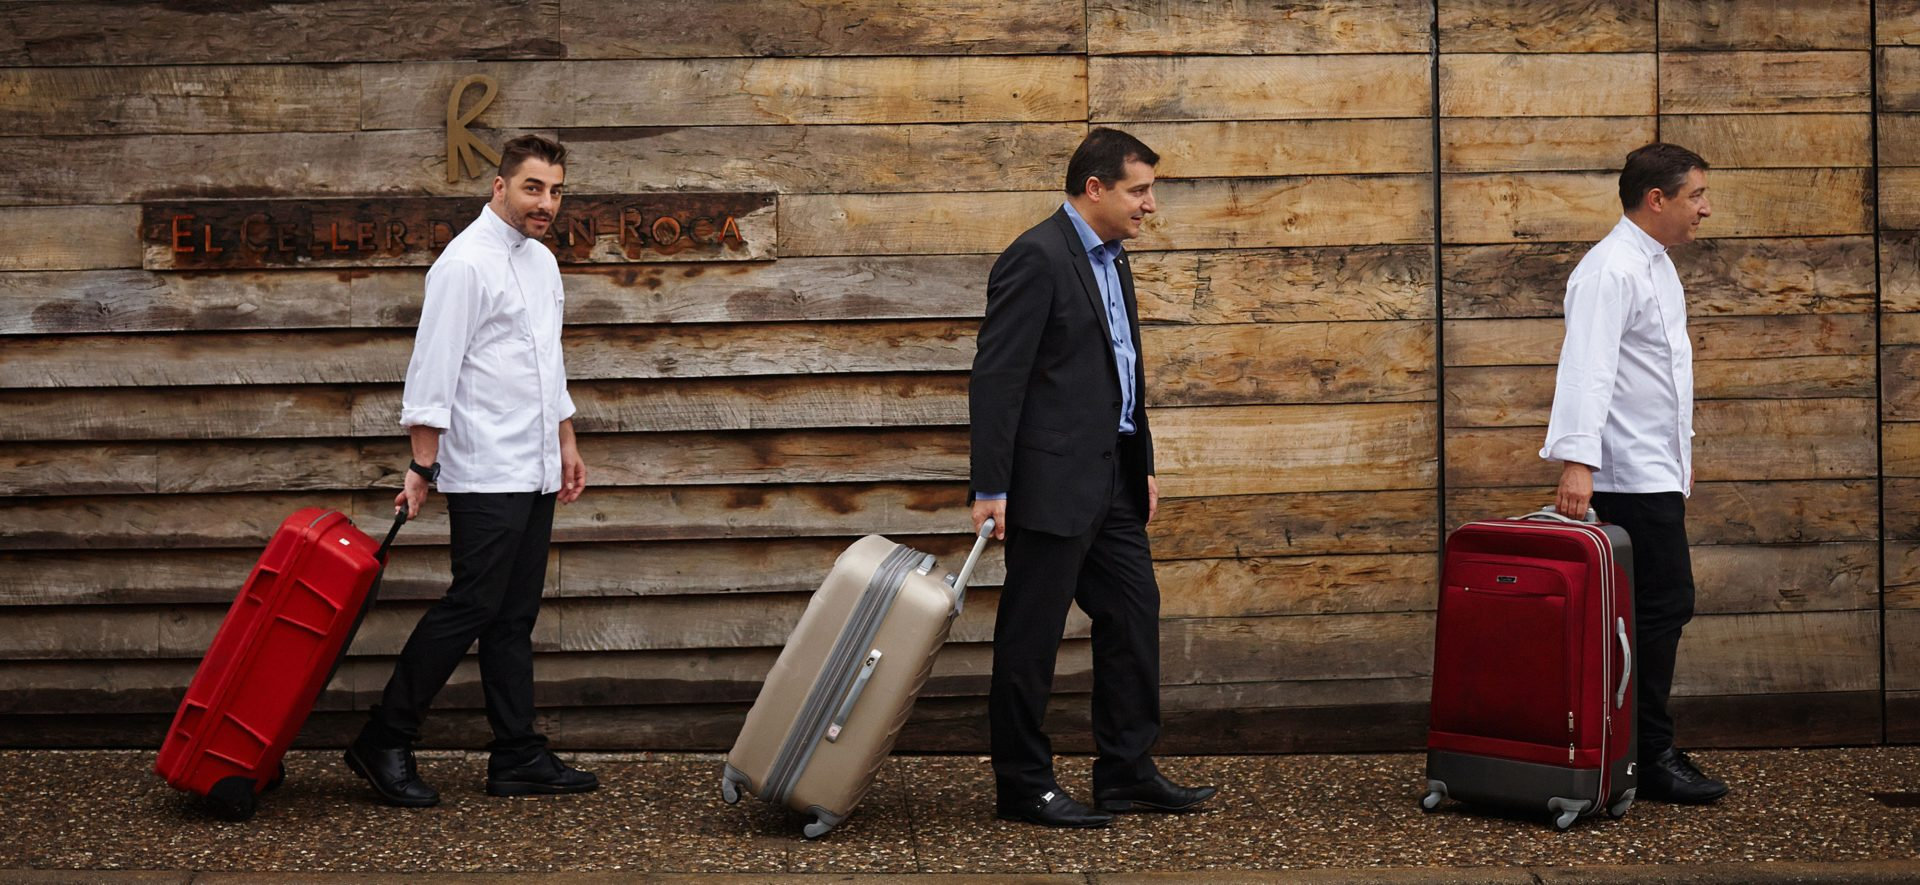 Picture of the Roca brothers with their suitcase BBVA